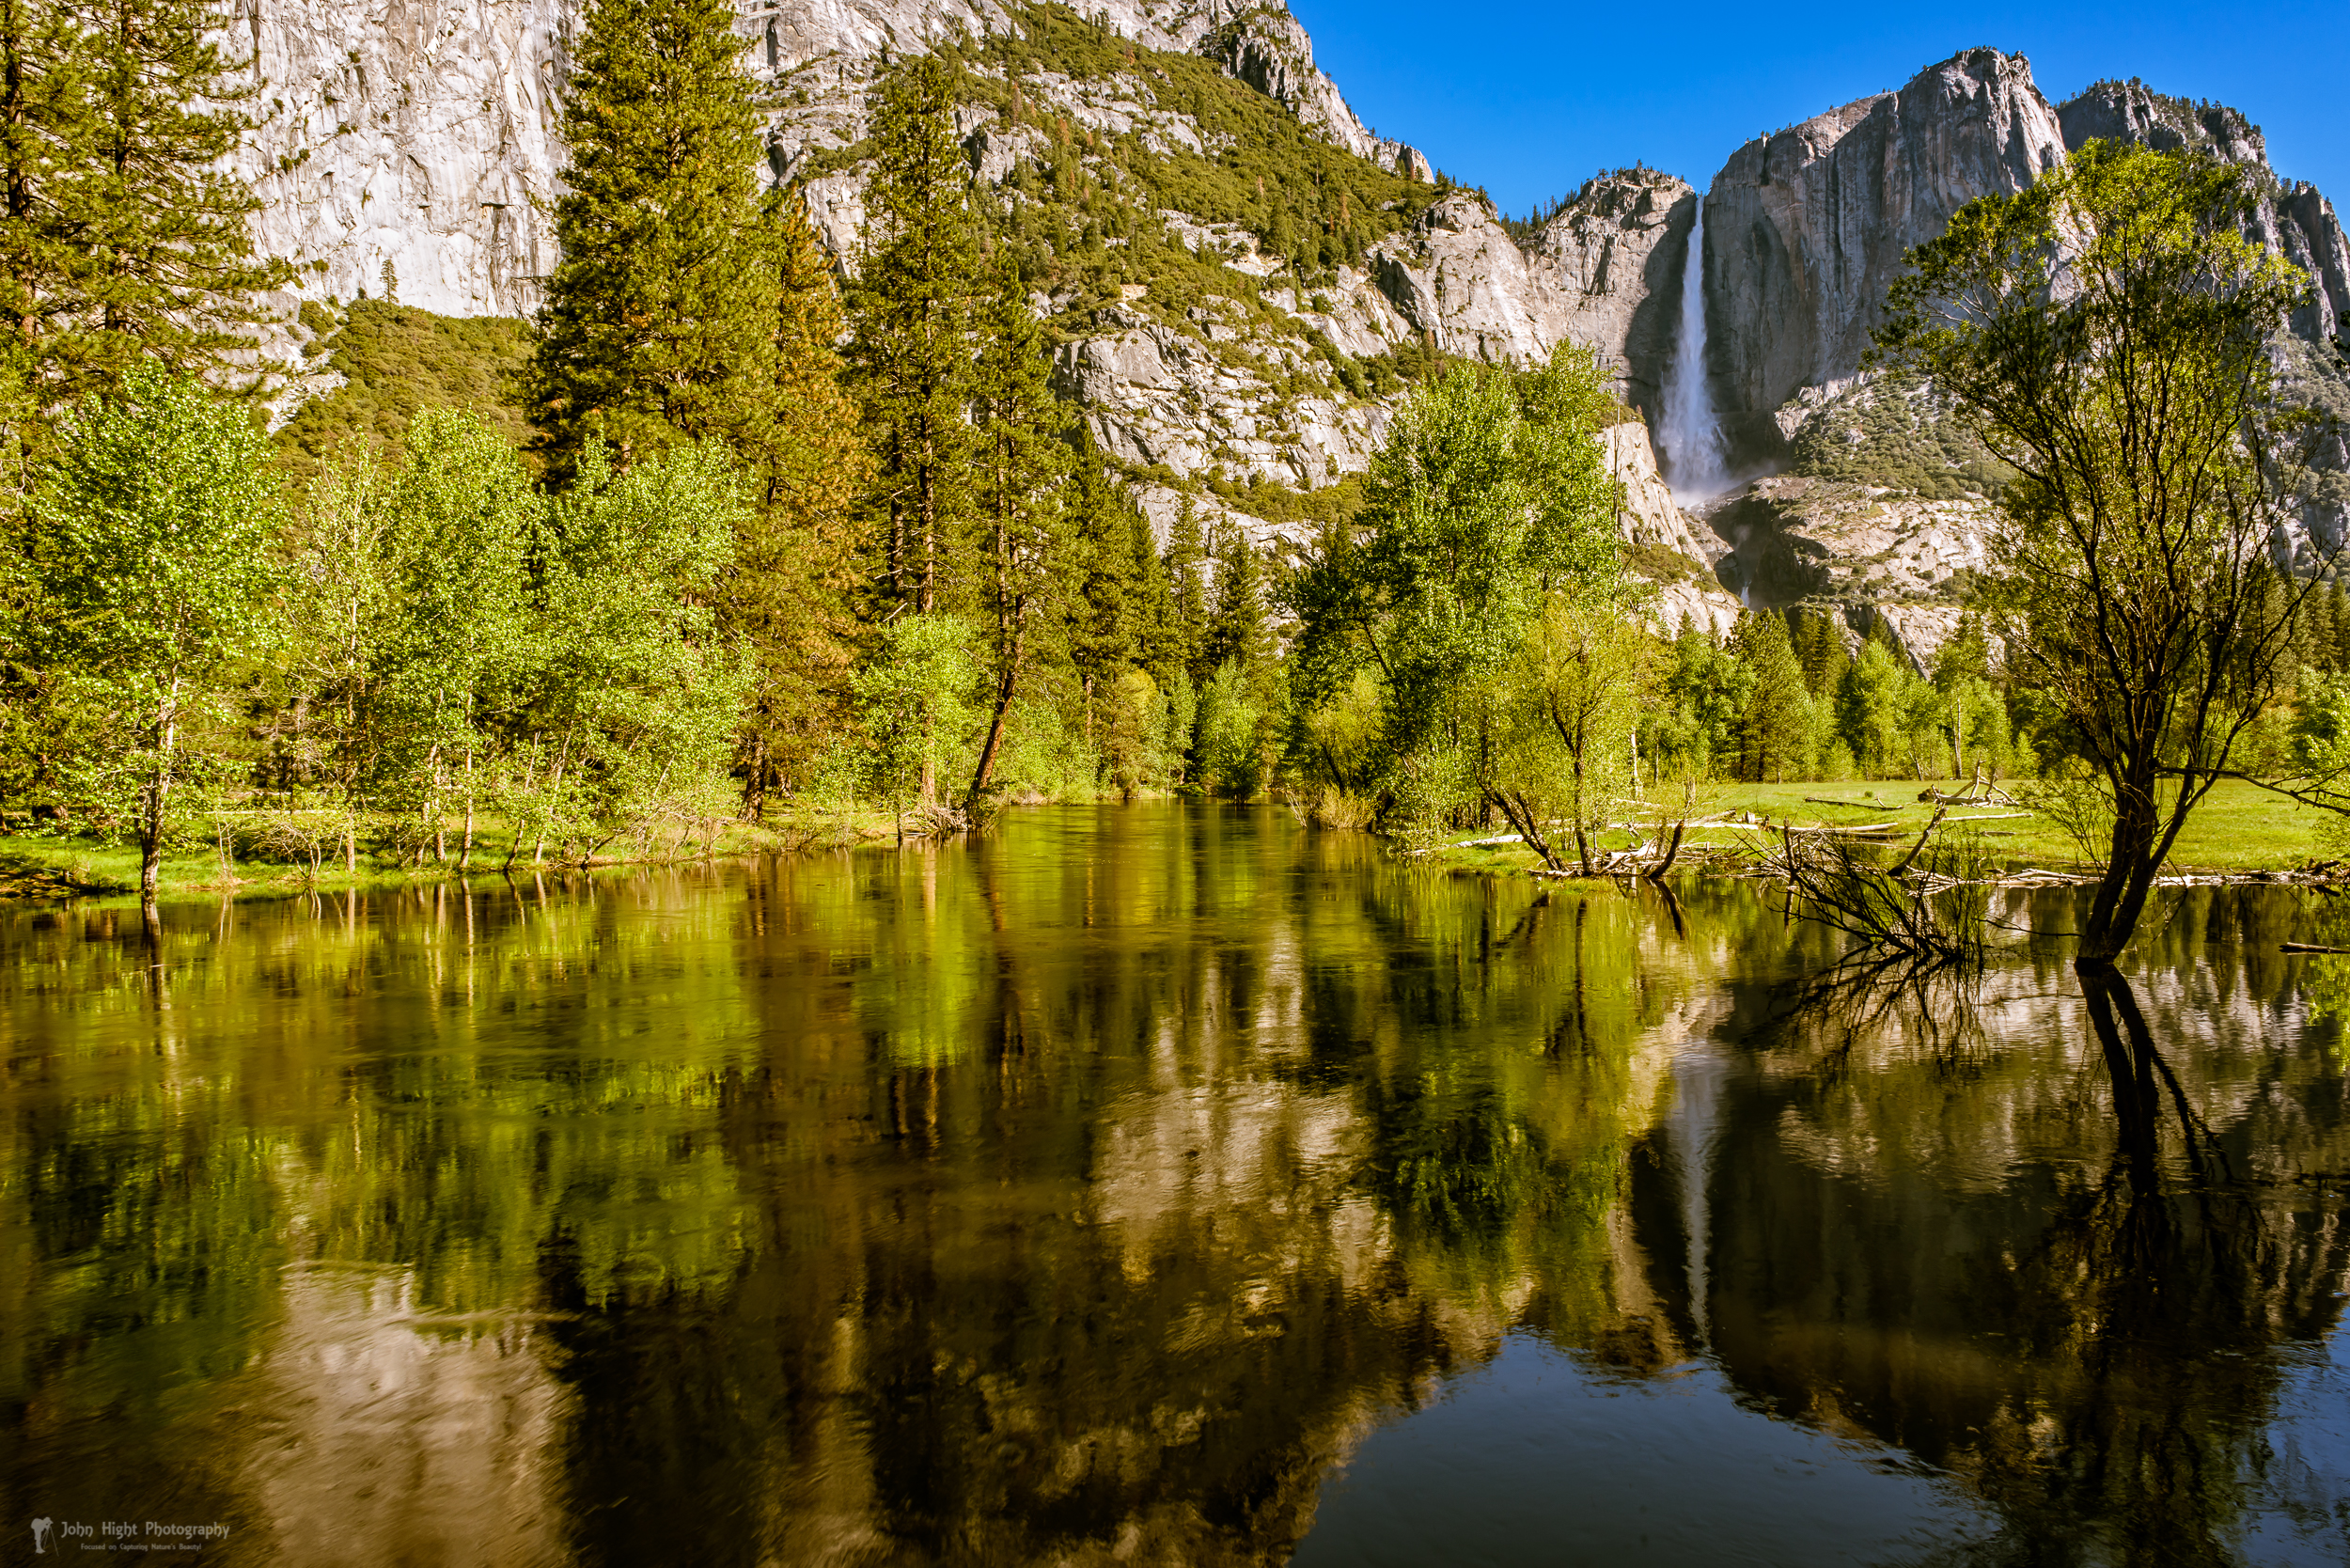 Yosemite Reflections on the Merced River